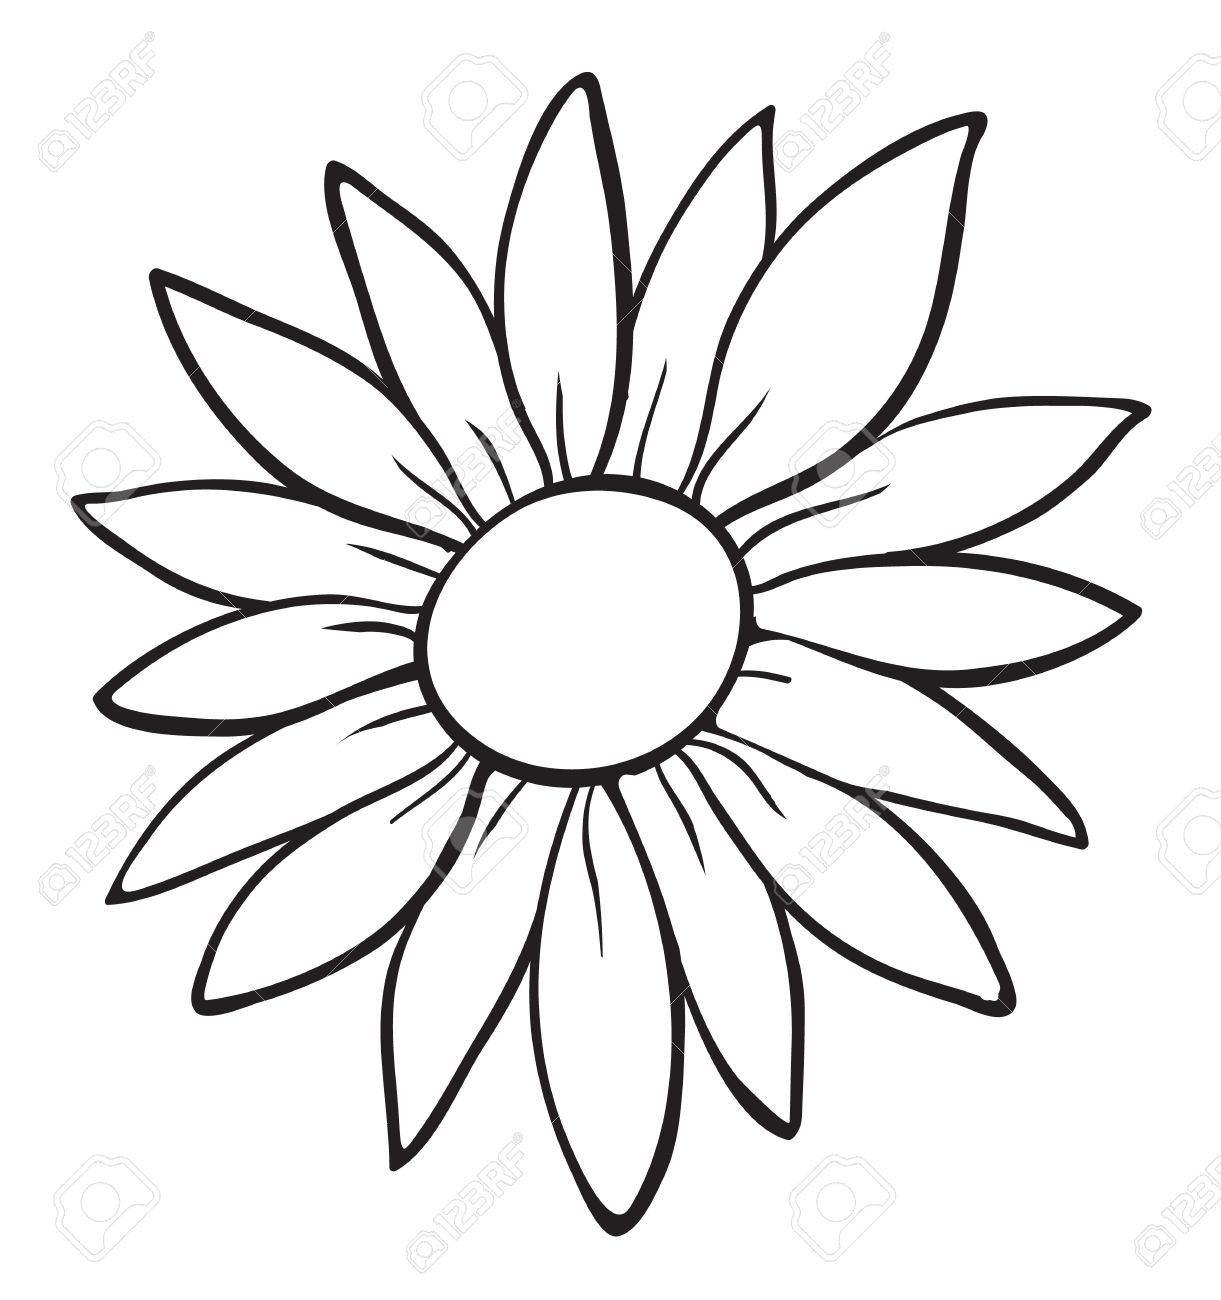 Pin By Linda B On Patterns Sunflower Drawing Sunflower Stencil Flower Drawing